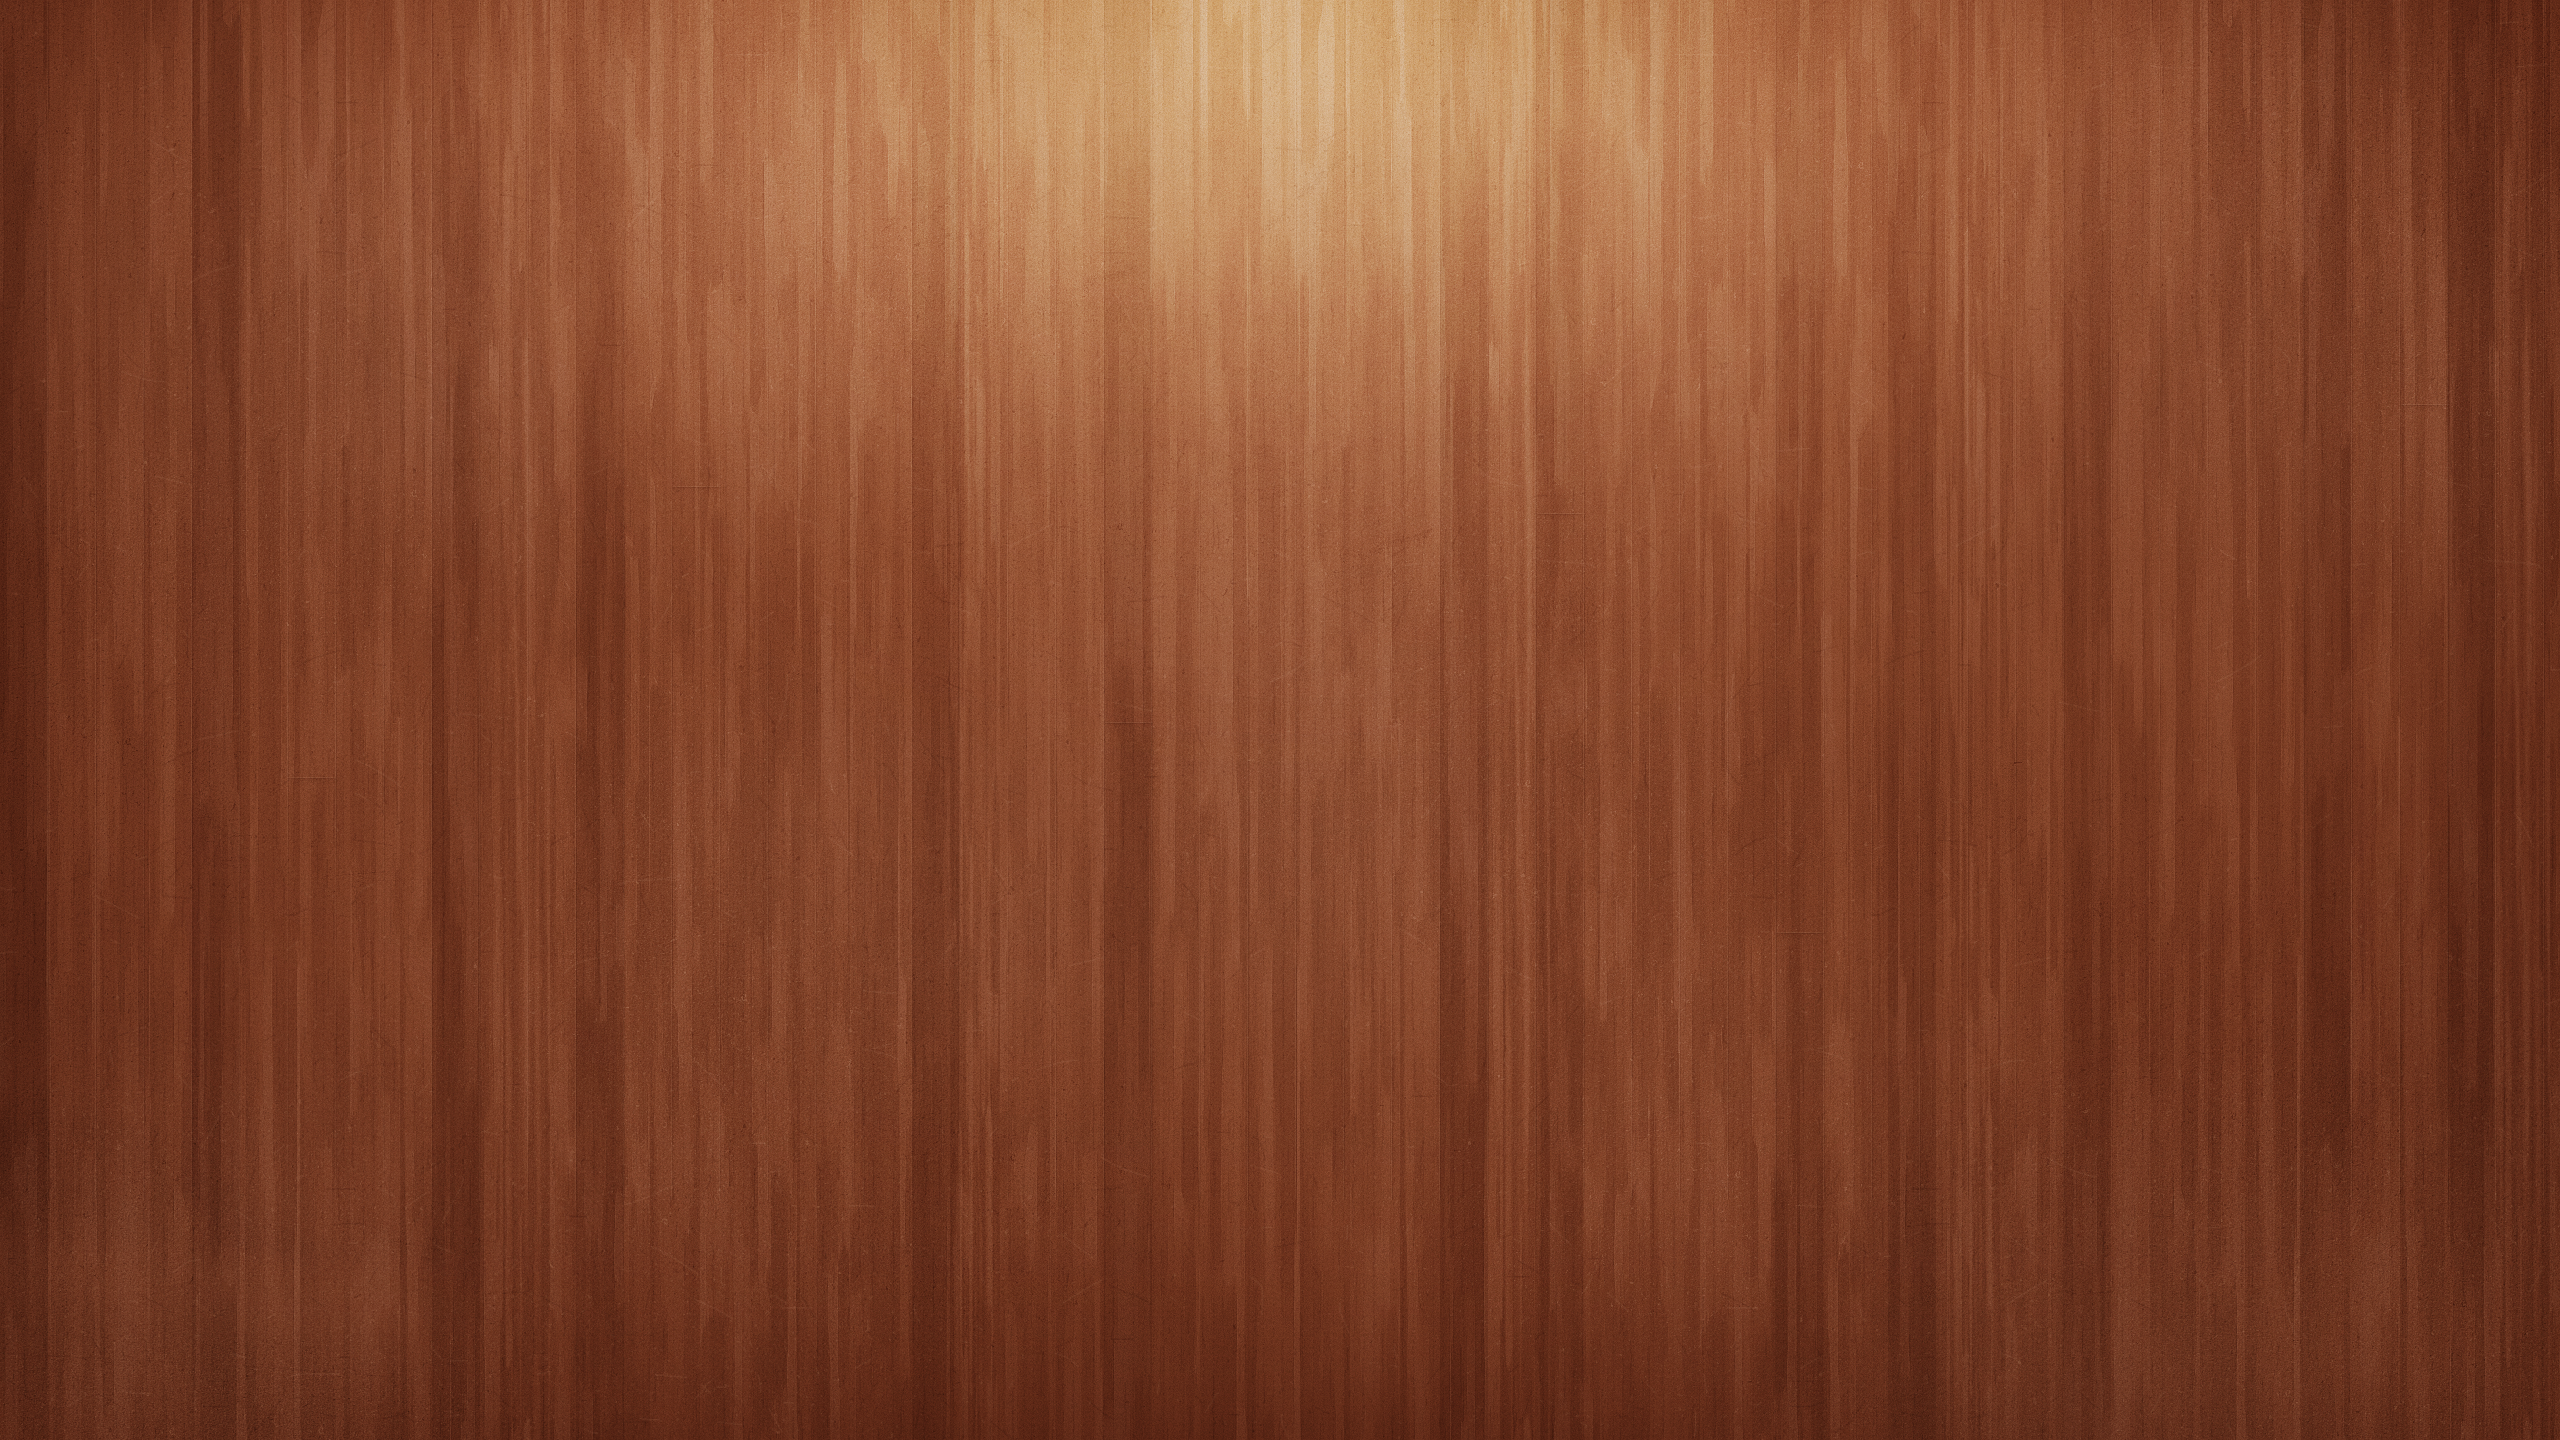 Awesome Natural Wood Wallpaper - http://wallpaperzoo.com/awesome ...